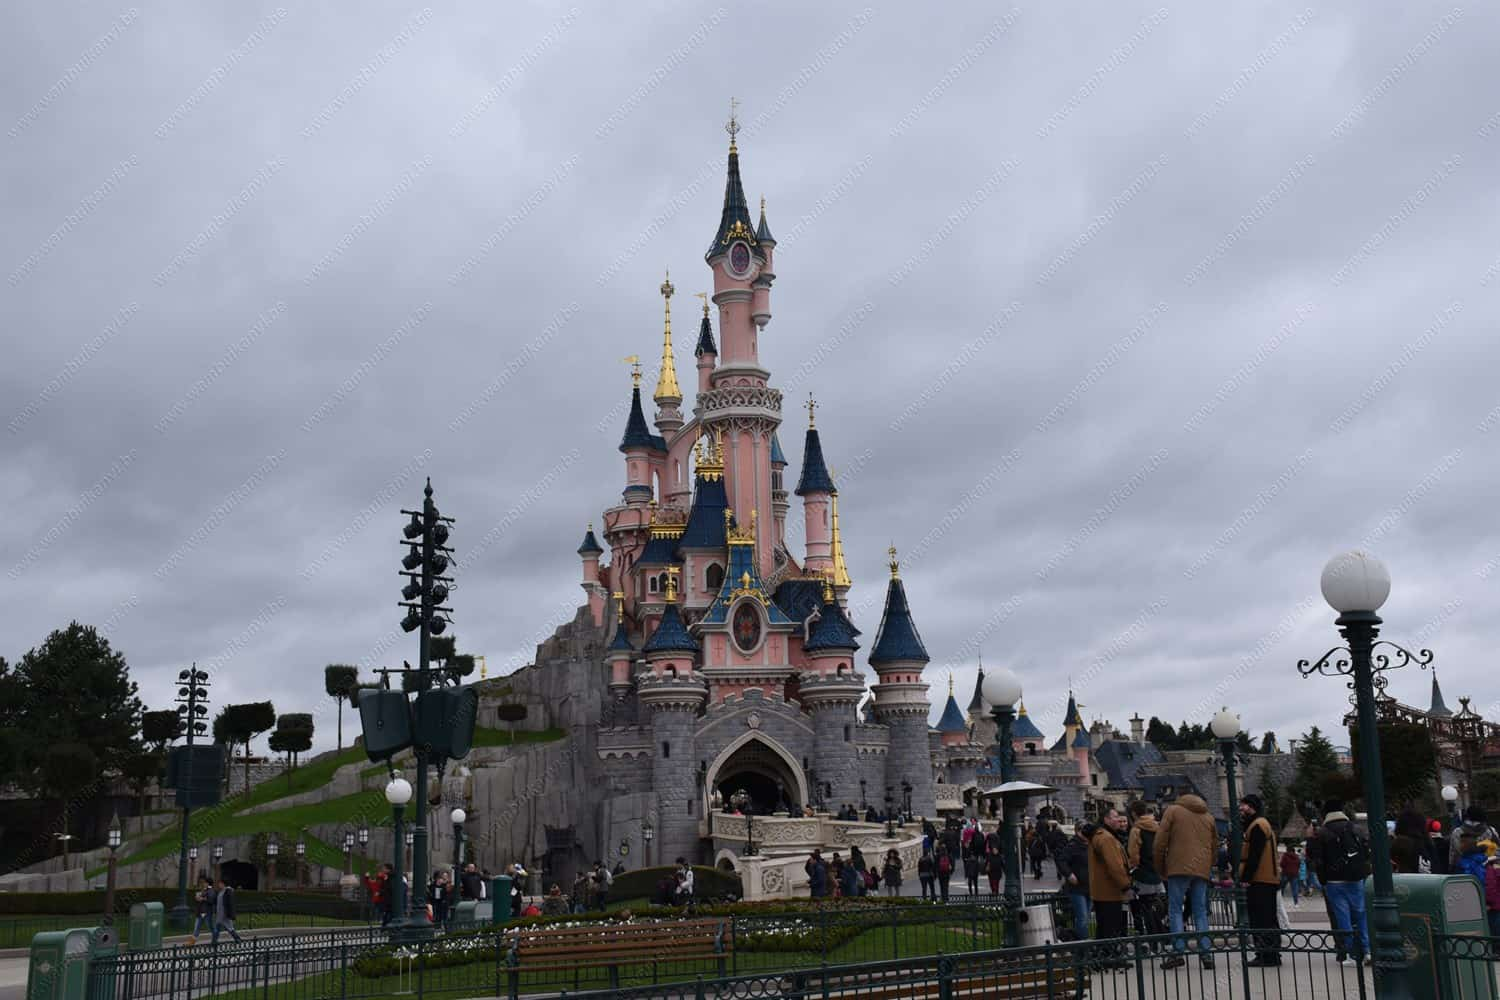 Disney Park in Paris Vacation Guide